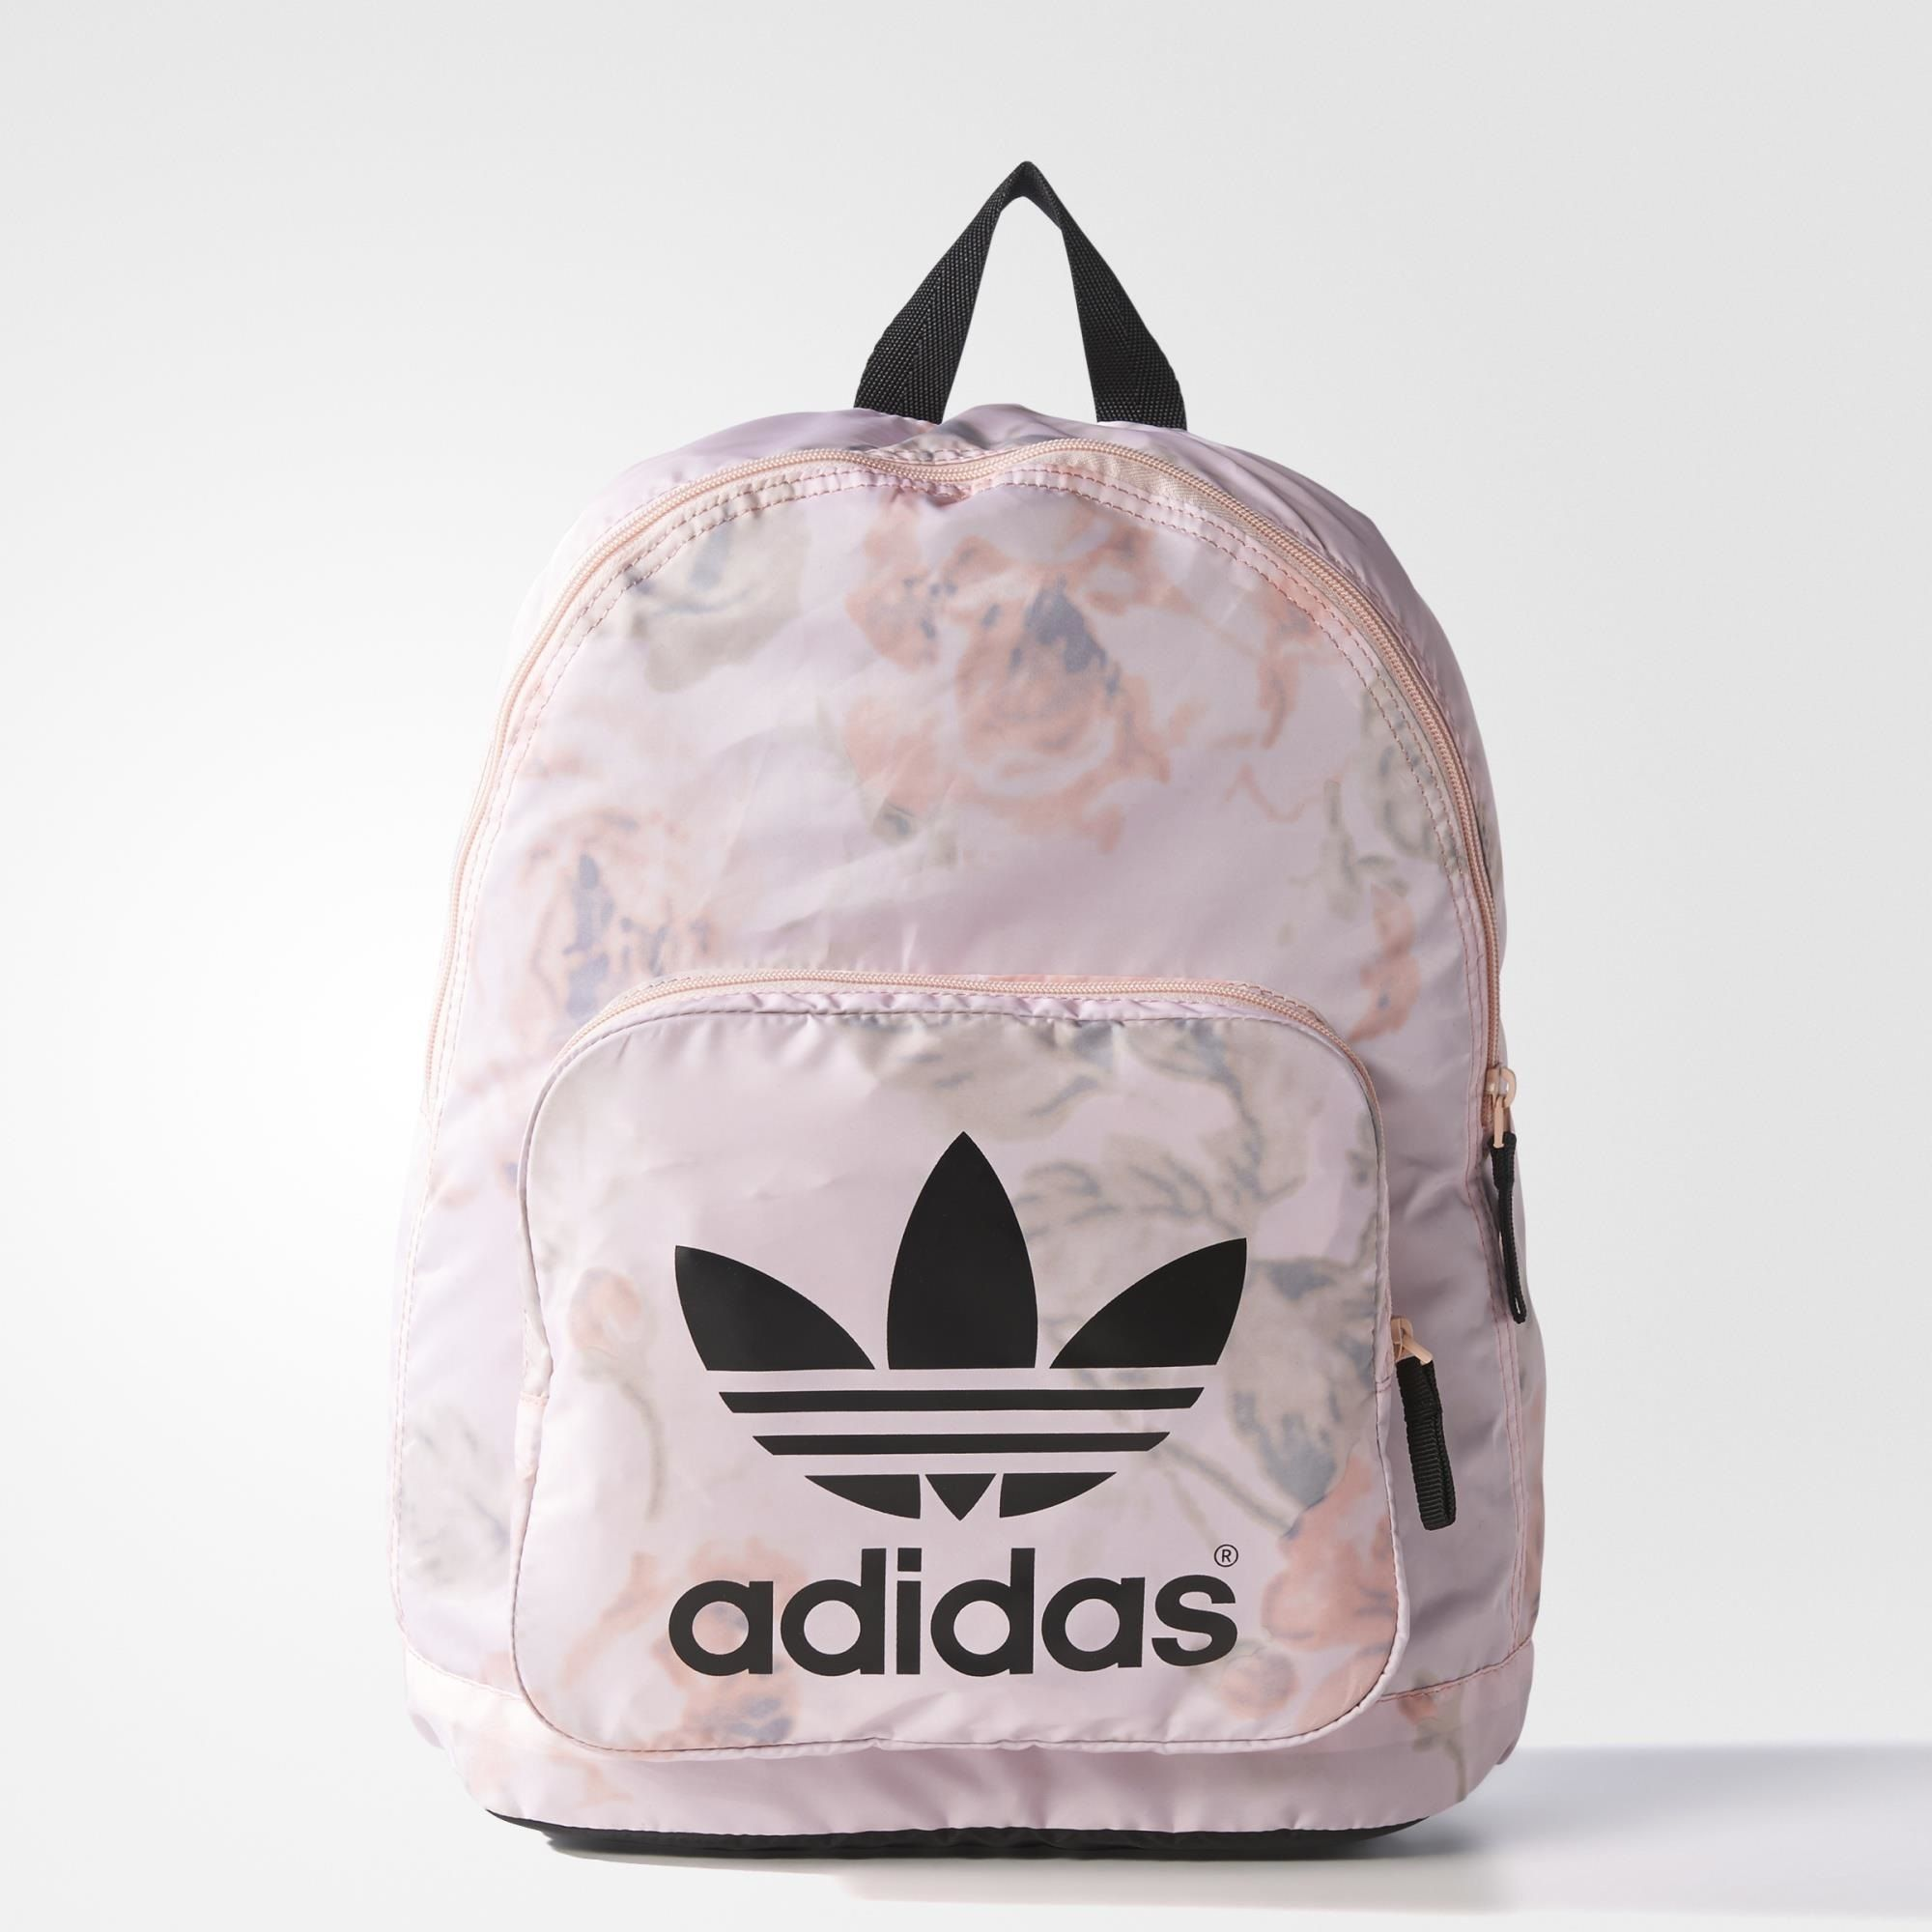 mochila adidas color rosa pastel throw it in the bag